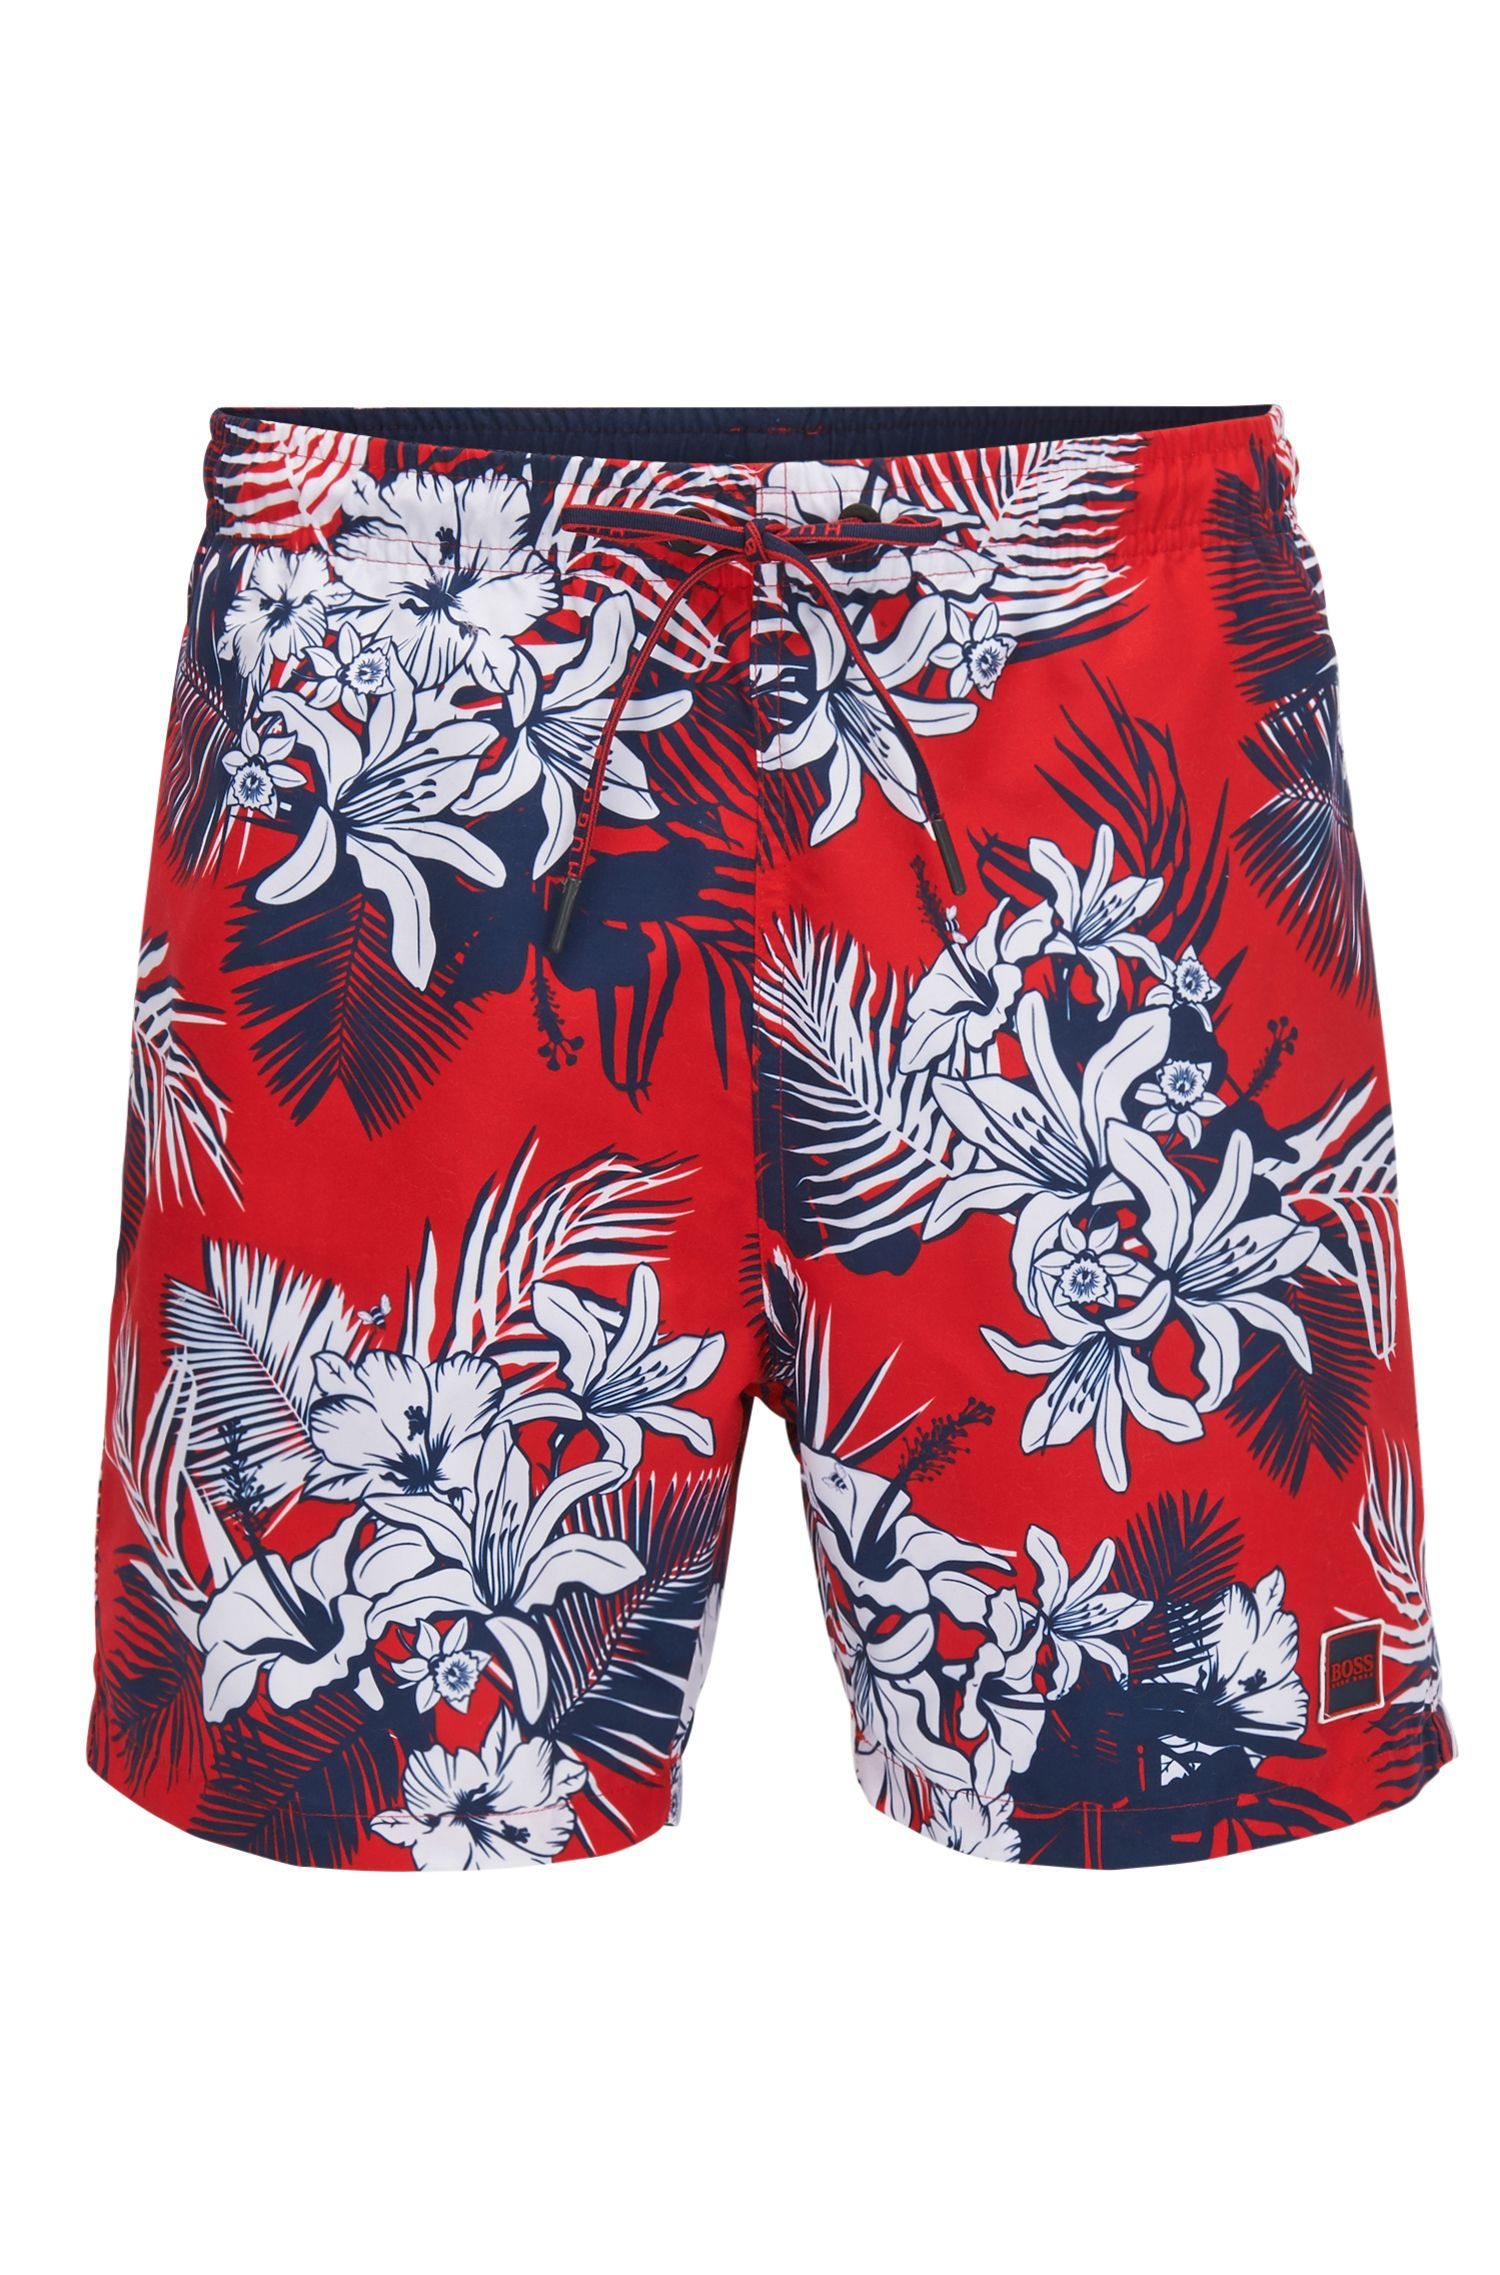 Drawstring swim shorts with palm print